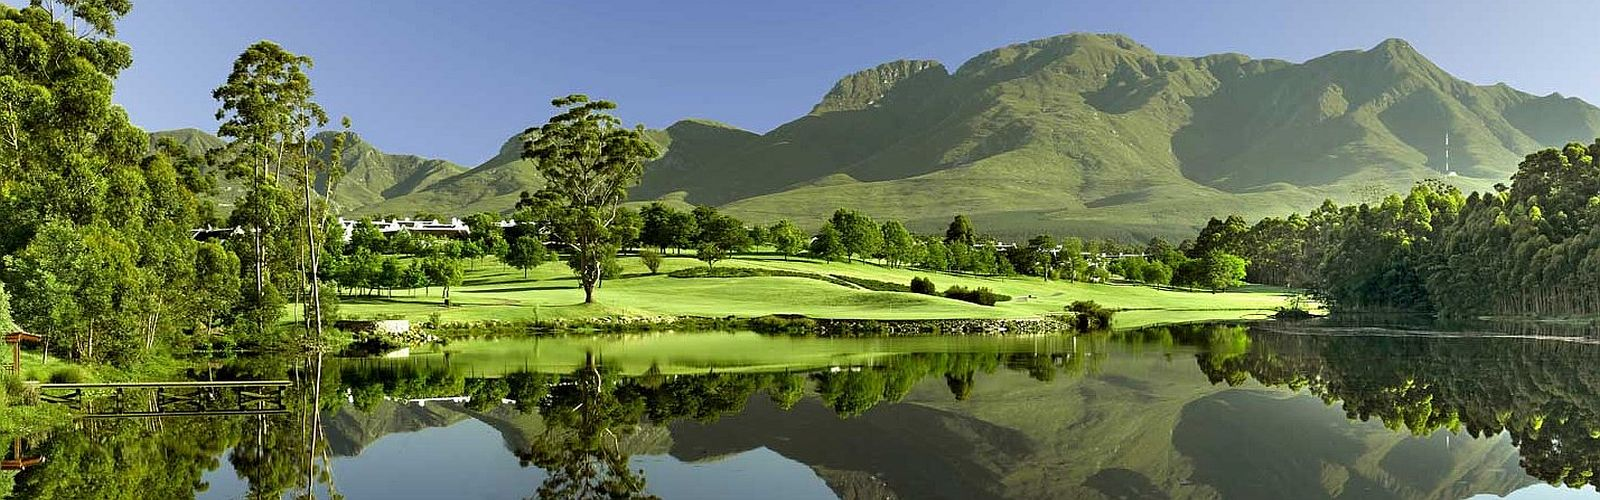 Golf Courts South Africa